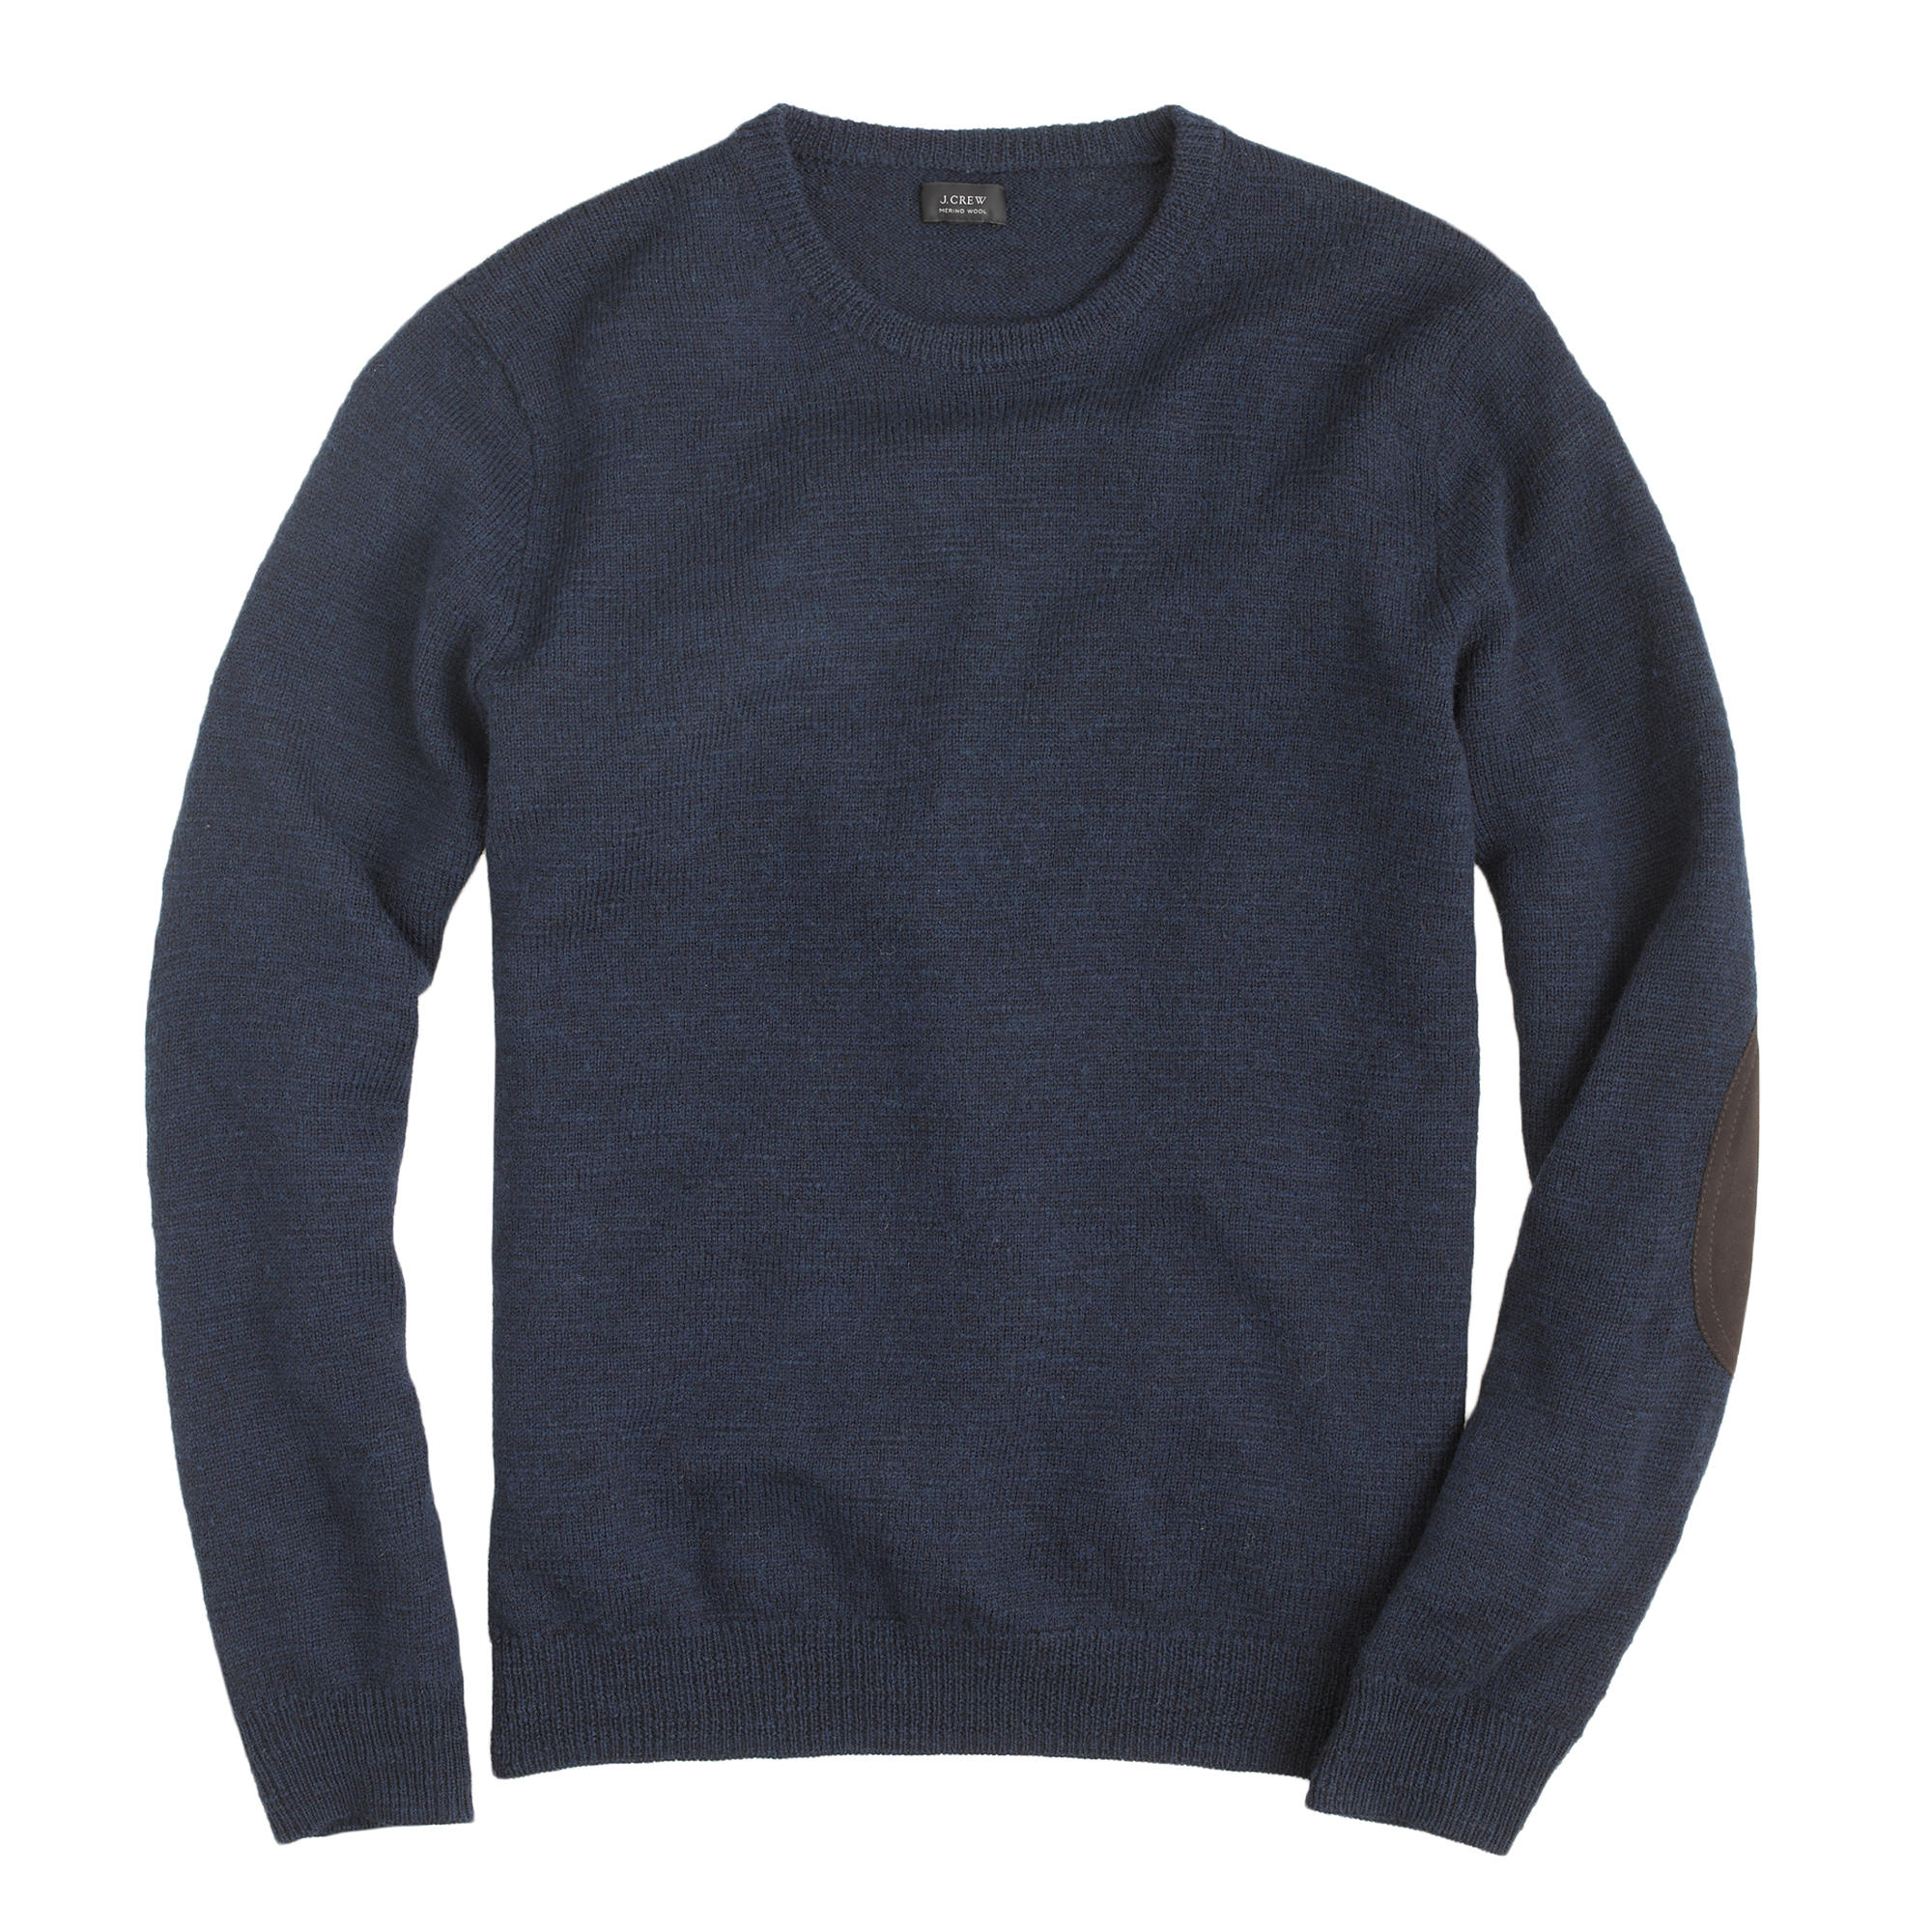 J crew tall rustic merino elbow patch sweater in blue for